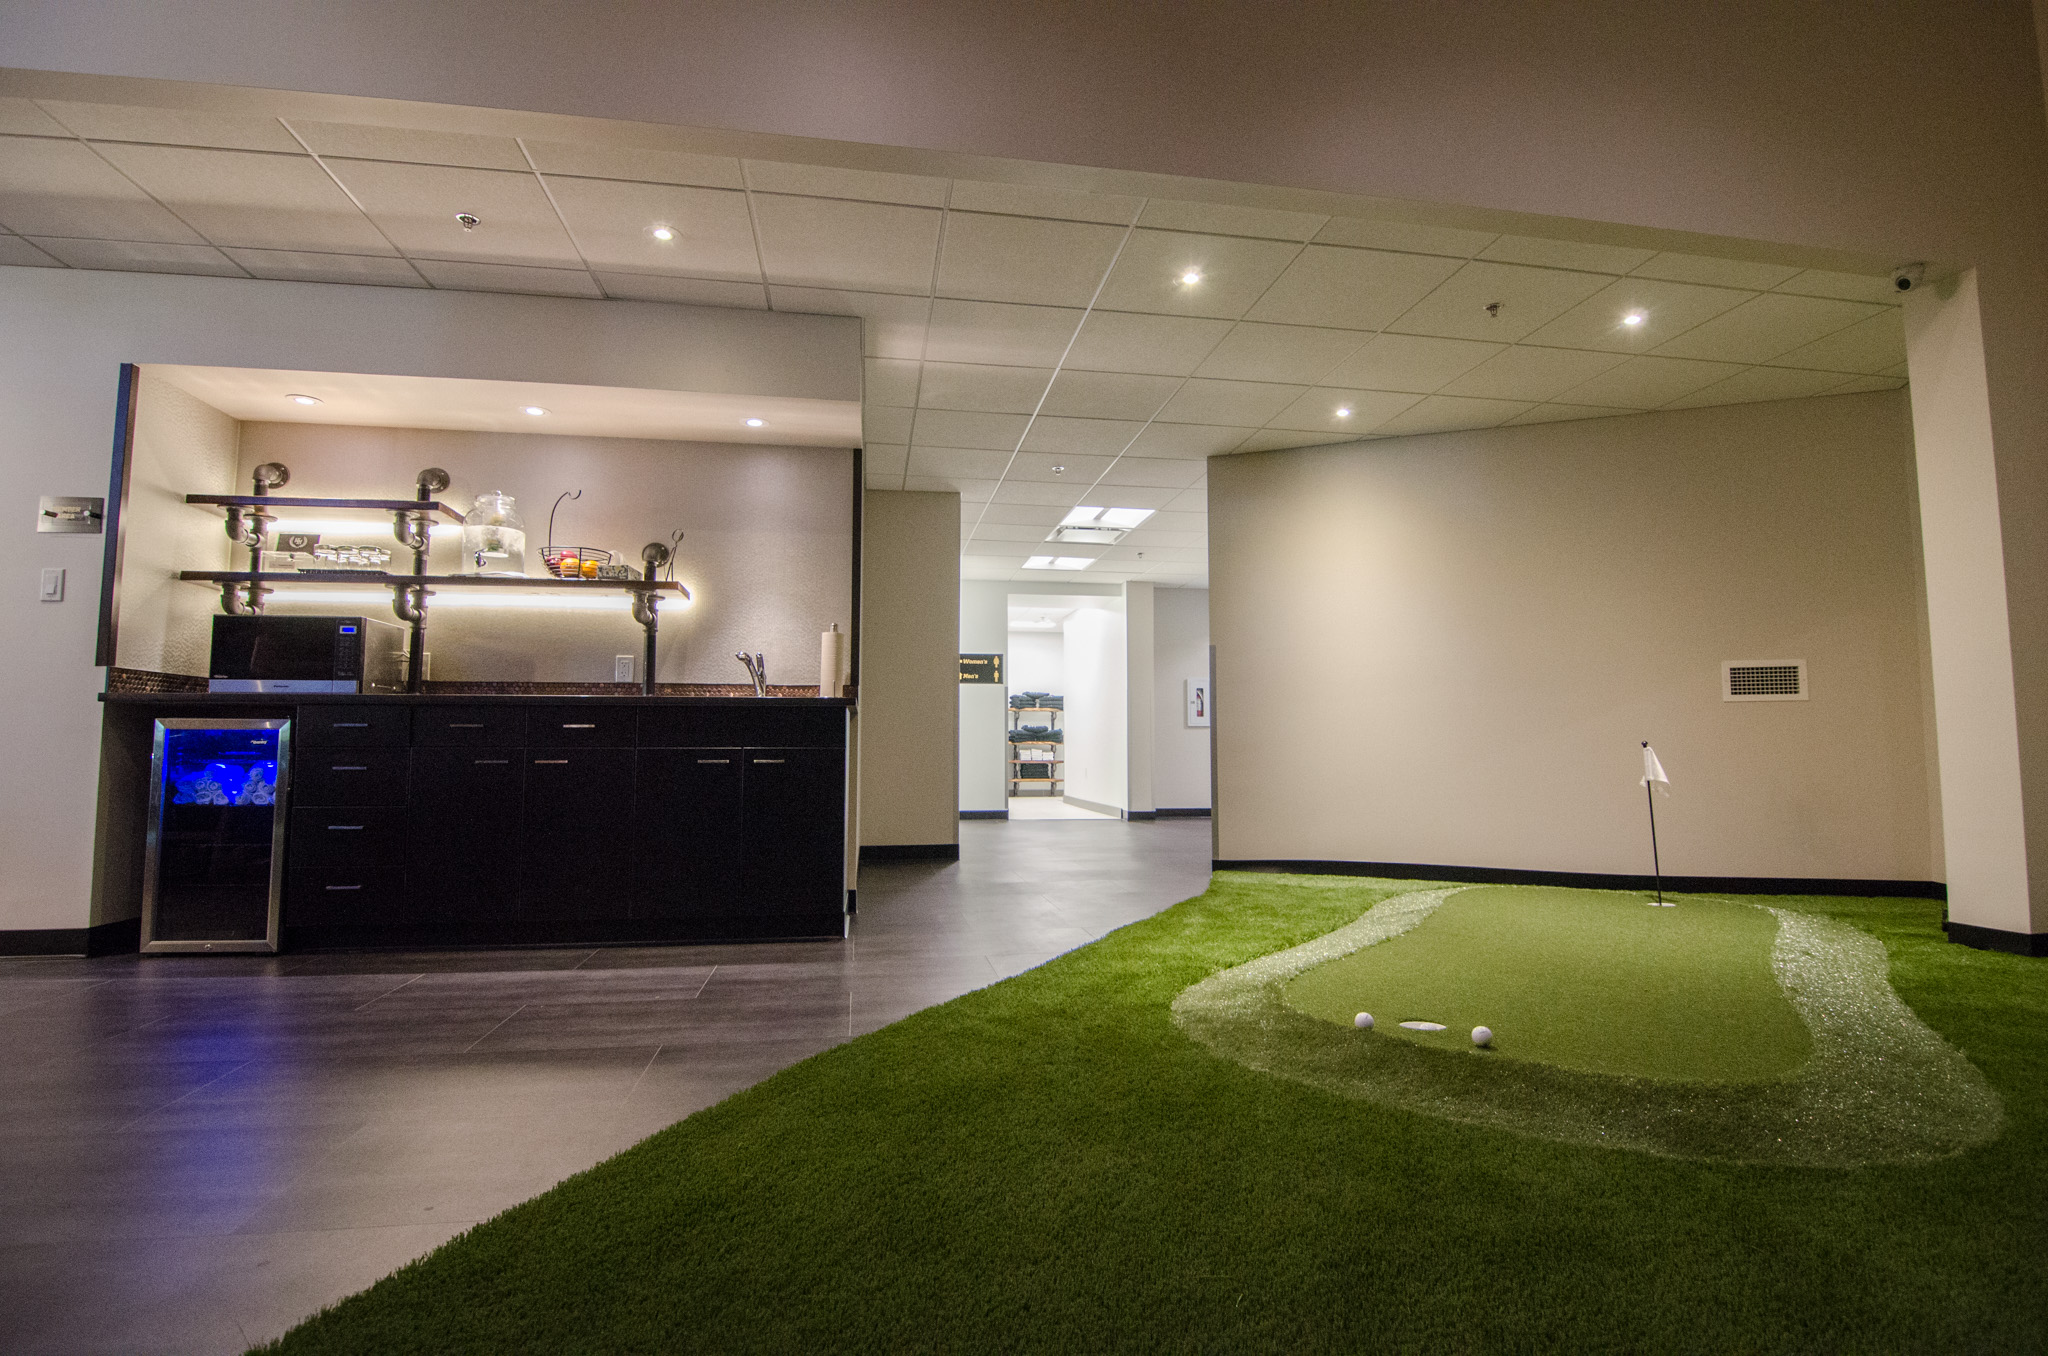 Putting/Chipping green